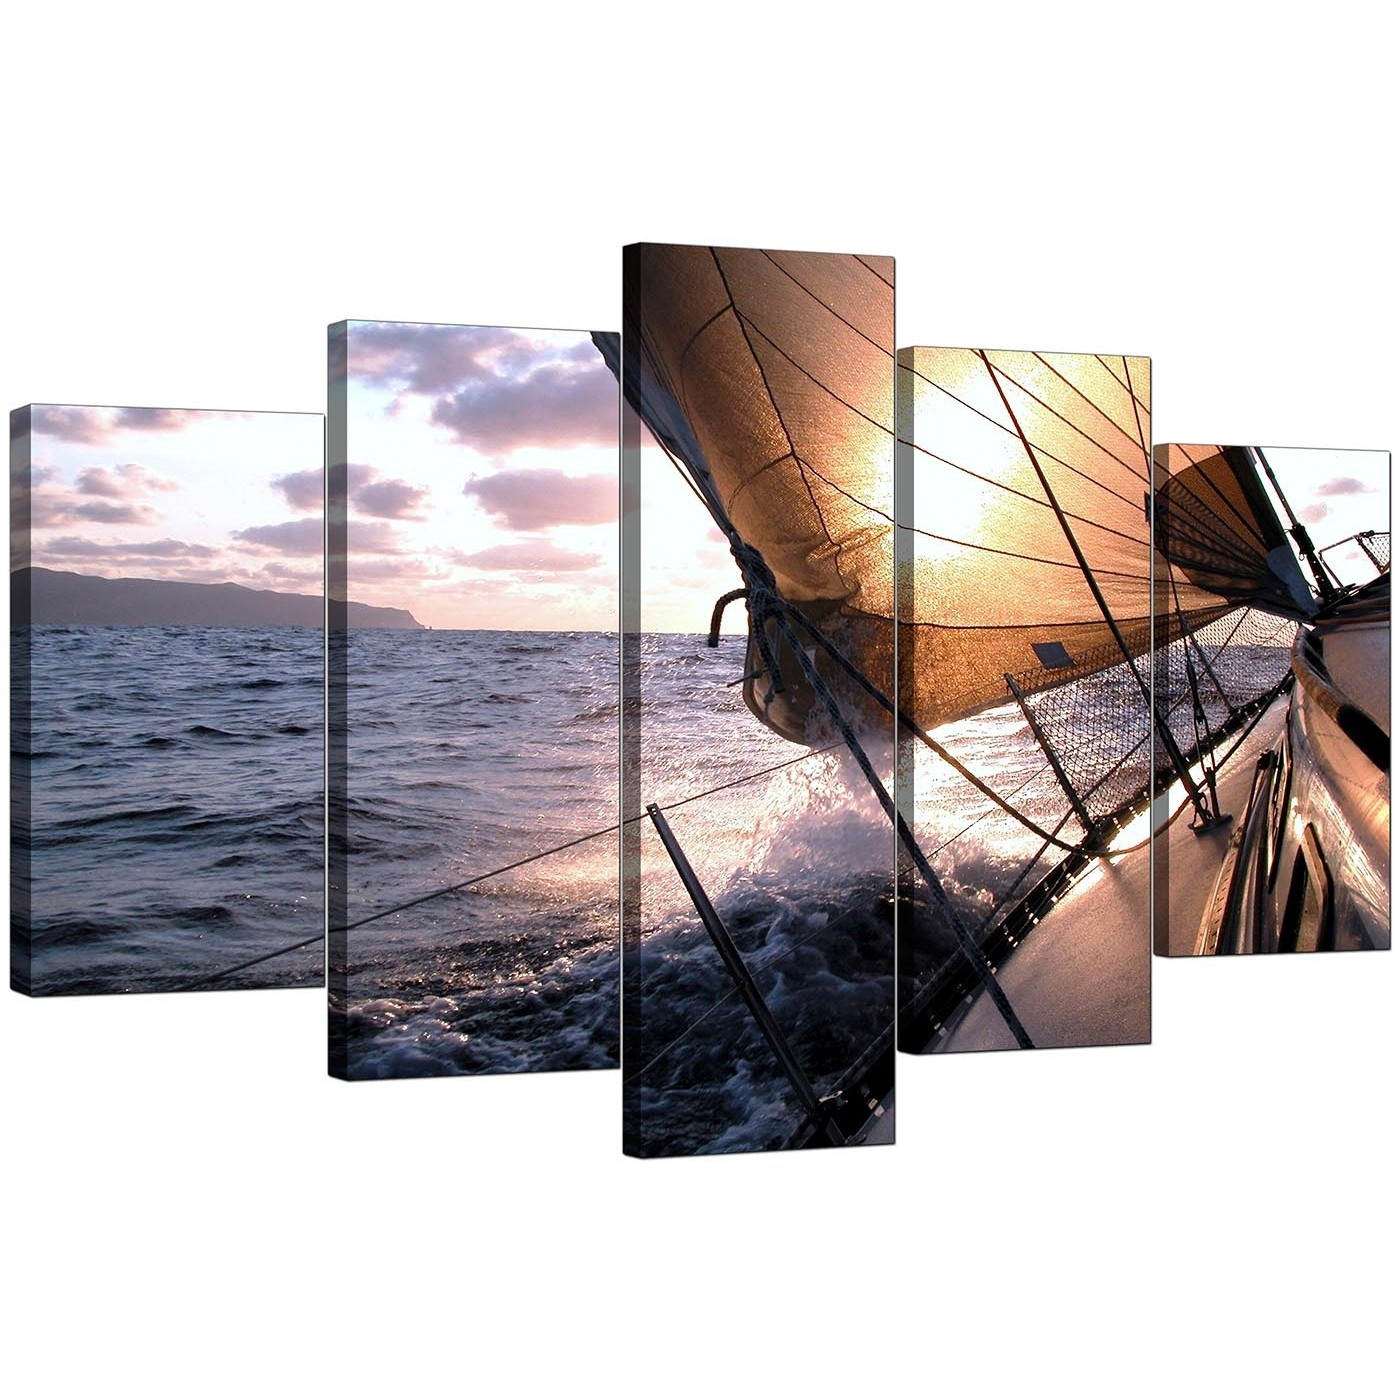 Boat Canvas Prints Uk For Your Living Room - 5 Piece pertaining to 5 Panel Wall Art (Image 9 of 20)